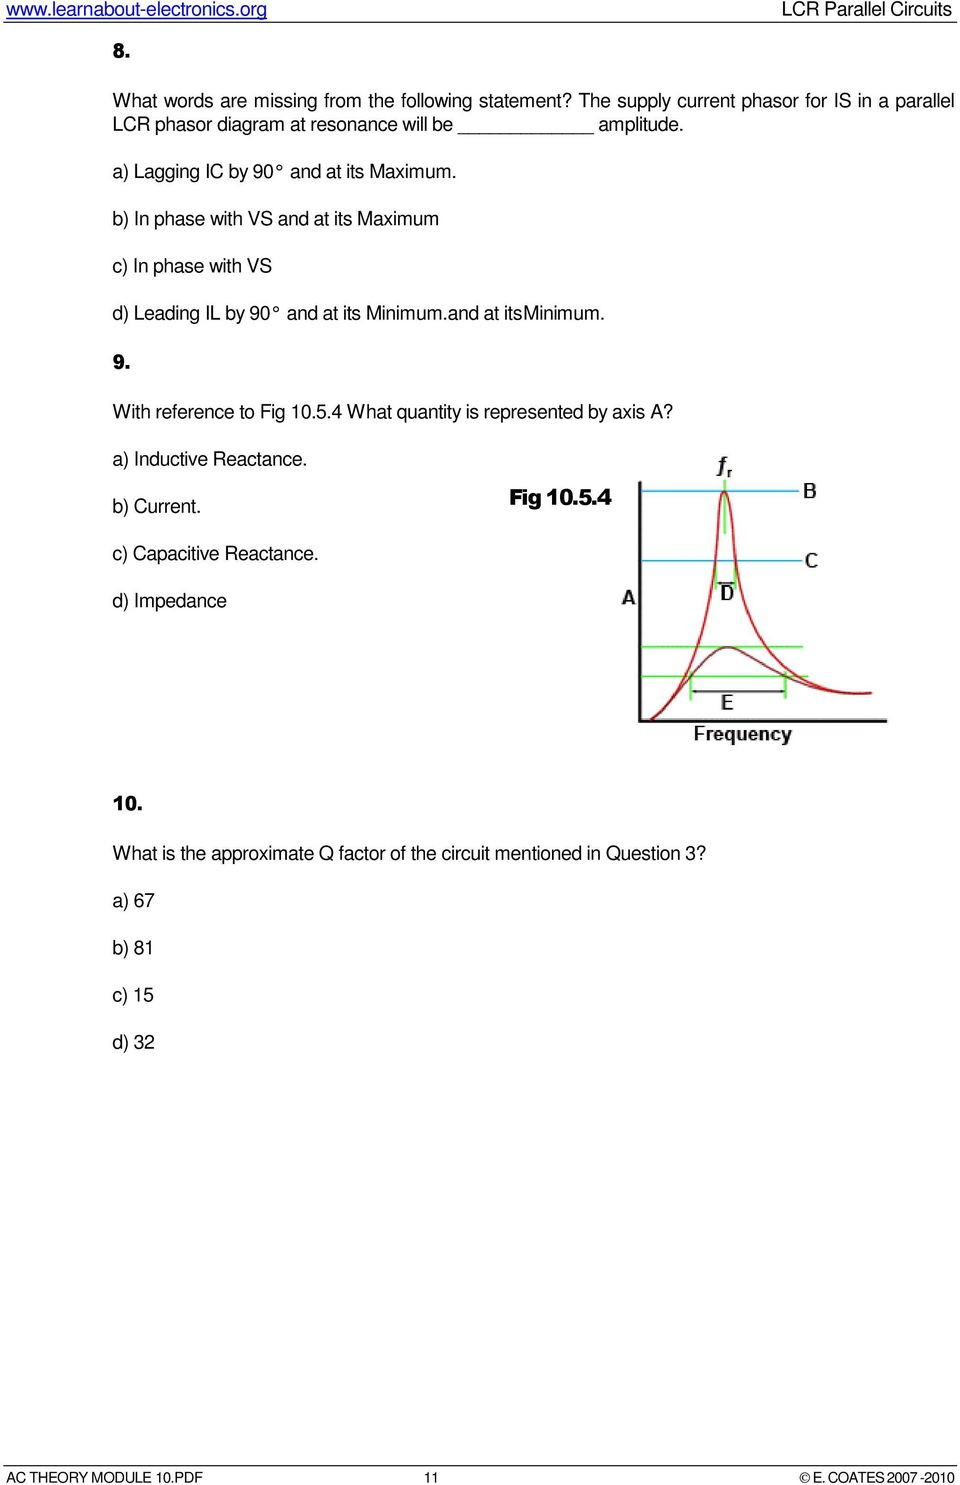 Lcr Parallel Circuits Pdf The Capacitive Reactance And Circuit Impedance Is Calculated As With Reference To Fig 1054 What Quantity